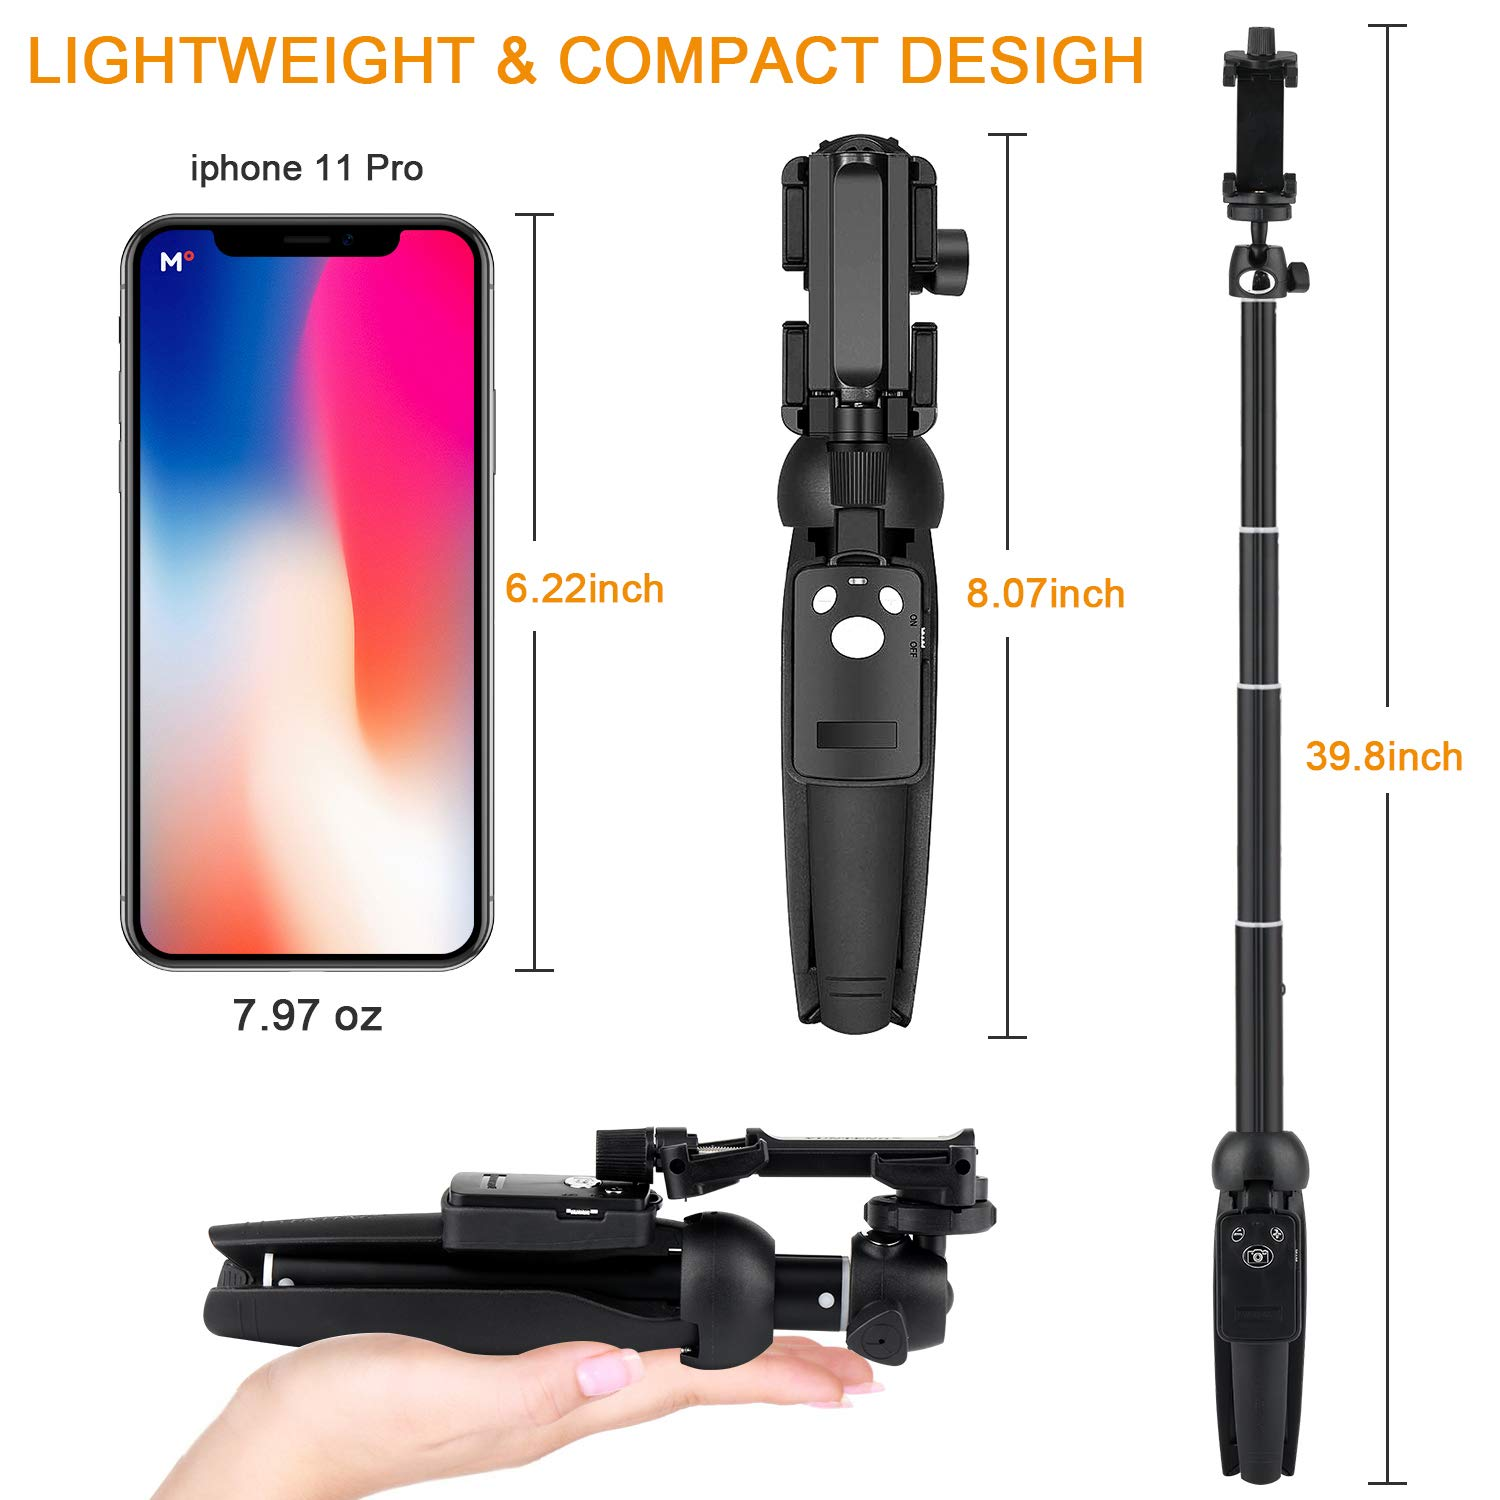 Professional Selfie Stick Tripod 40-inch Extendable Selfie Stick with Wireless Remote and Tripod Stand for iPhone 6 7 8 X Plus,Samsung Galaxy Note 9//S9//Huawei//Honor and More Selfie Stick